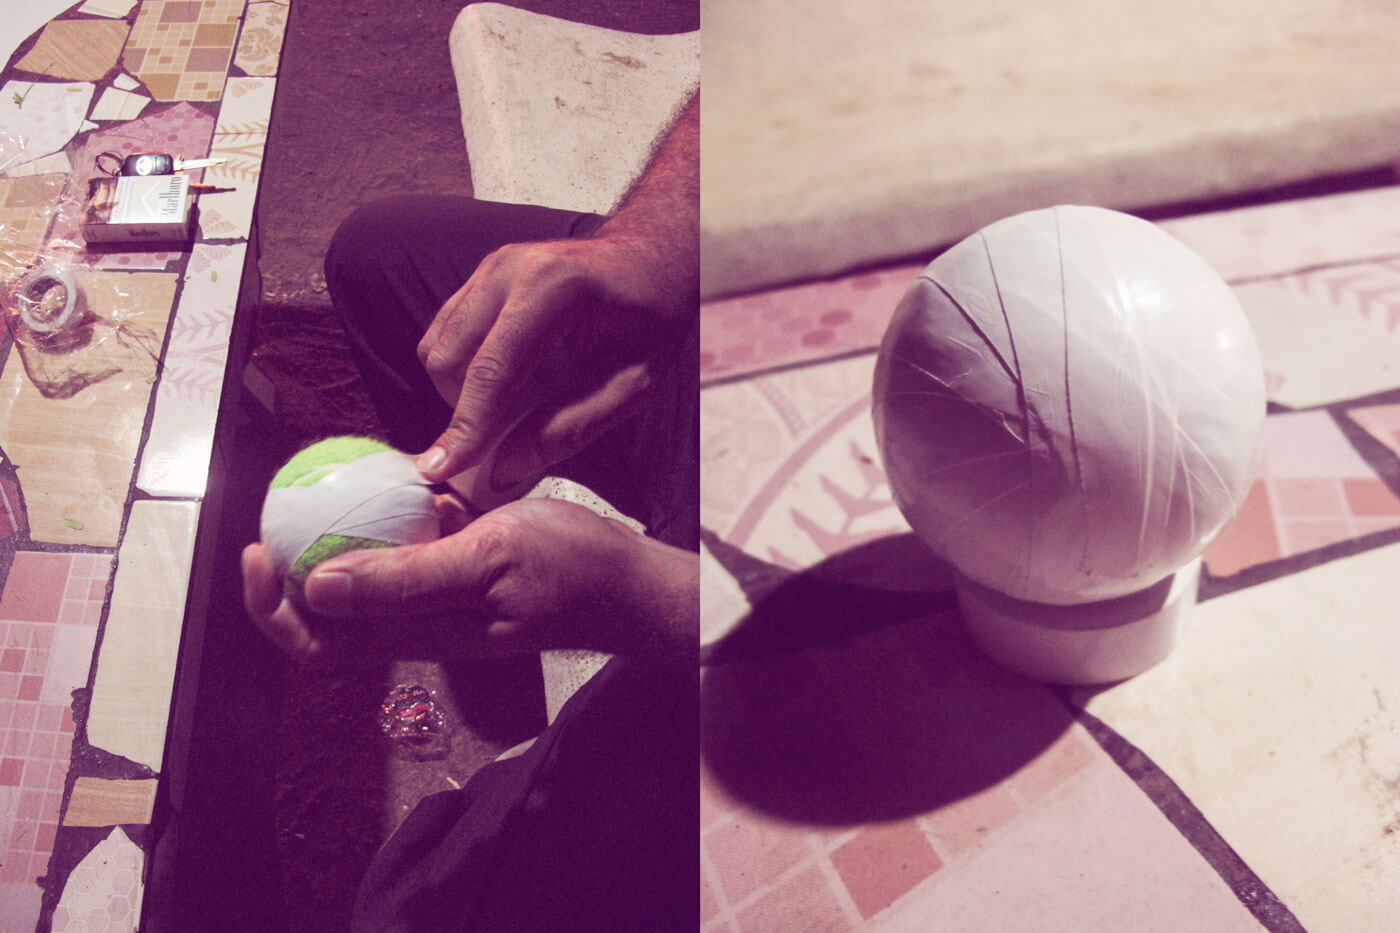 Caught on tape: a tennis ball is readied for a night match